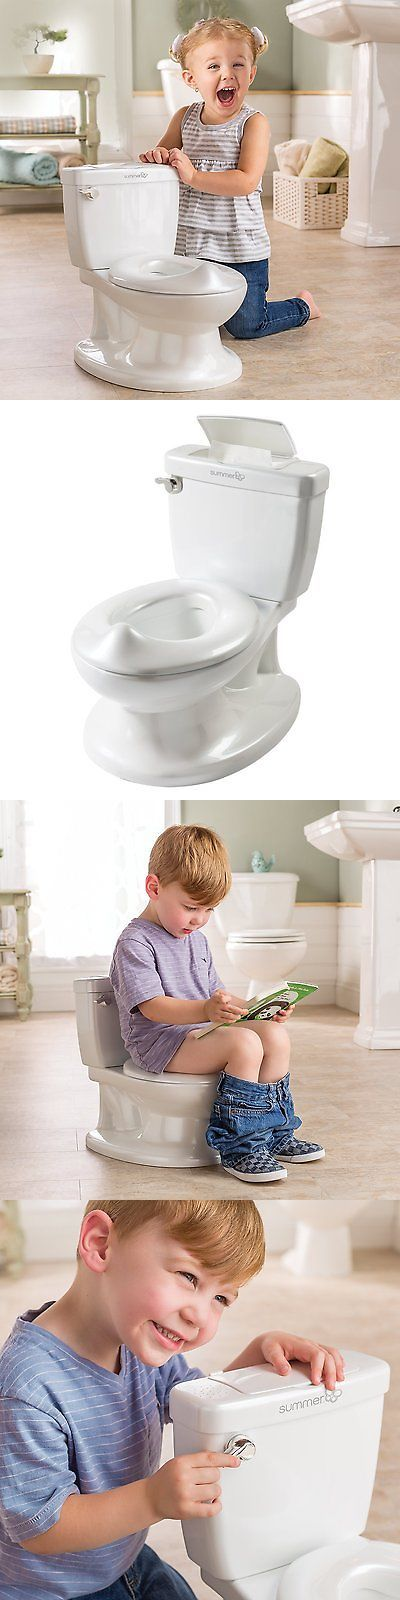 Potty Training 37631: Potty Training Toilet Seat Baby Portable Toddler Chair Kids Girl Boy Trainer New -> BUY IT NOW ONLY: $31.86 on eBay!